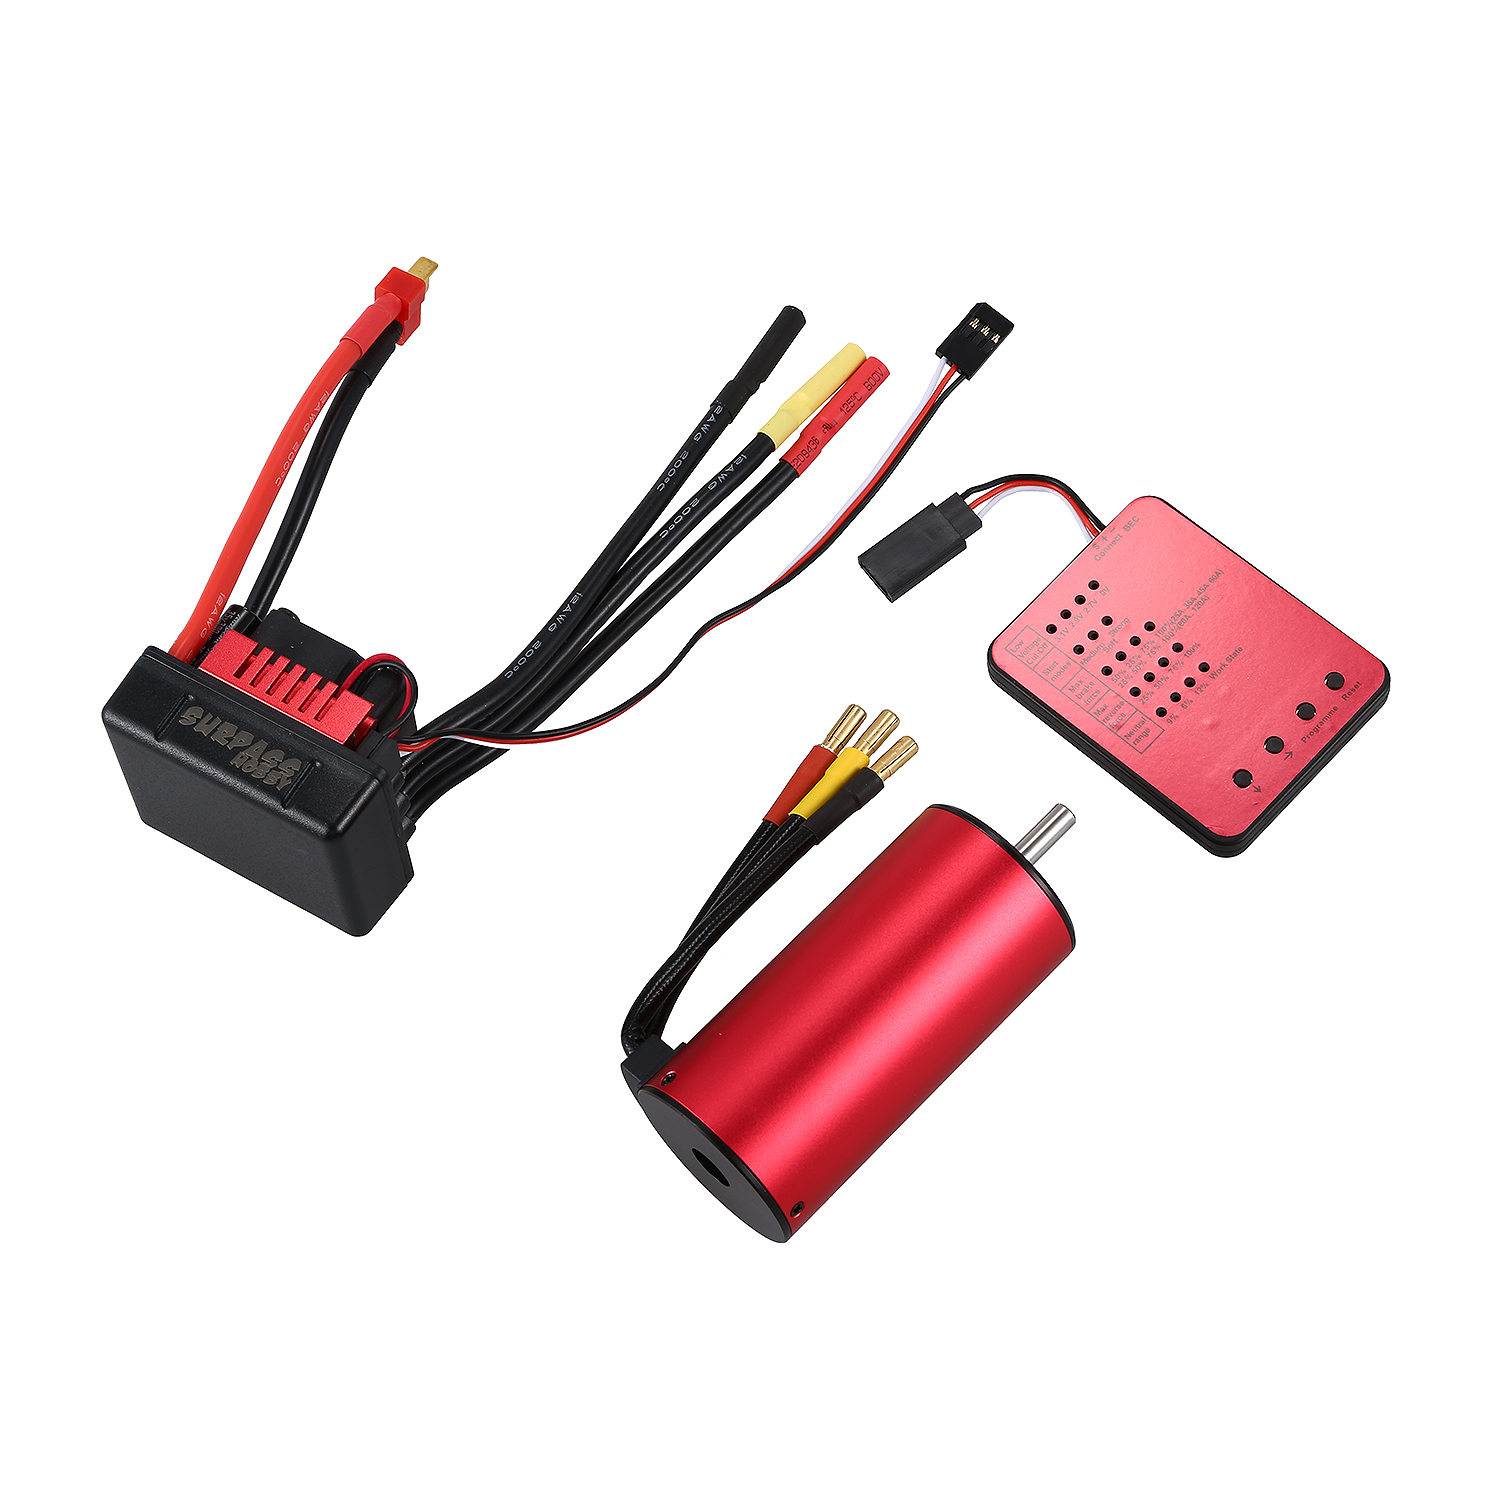 SURPASS HOBBY S3674 2650KV Sensorless Brushless Motor + 120A Brushless ESC and Program Card Combo Set for 1/8 RC Car Truck original goolrc s3650 3900kv sensorless brushless motor 60a brushless esc and program card combo set for 1 10 rc car truck